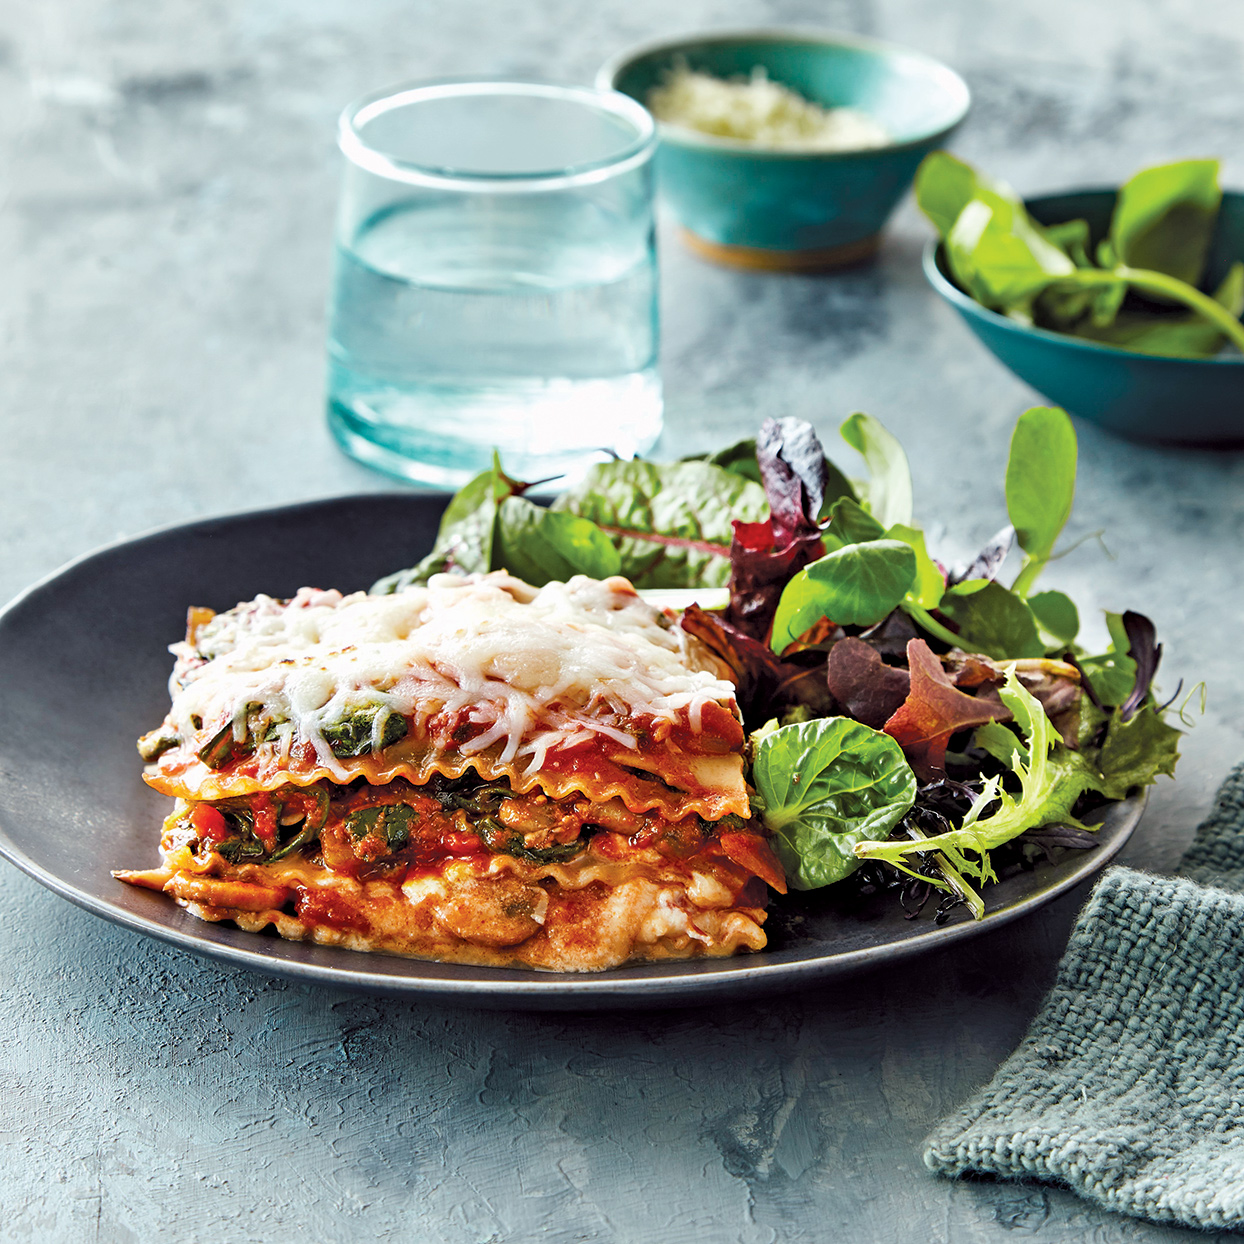 Cooking lasagna in your slow cooker rather than in the oven keeps it super moist and cheesy--just like lasagna should be. You can easily assemble this dish in the slow cooker ahead of time and refrigerate it. Just be sure to let the slow cooker come to room temperature before starting it so that the cook time is accurate. Serve with a green salad, if desired. Source: Everyday Slow Cooker